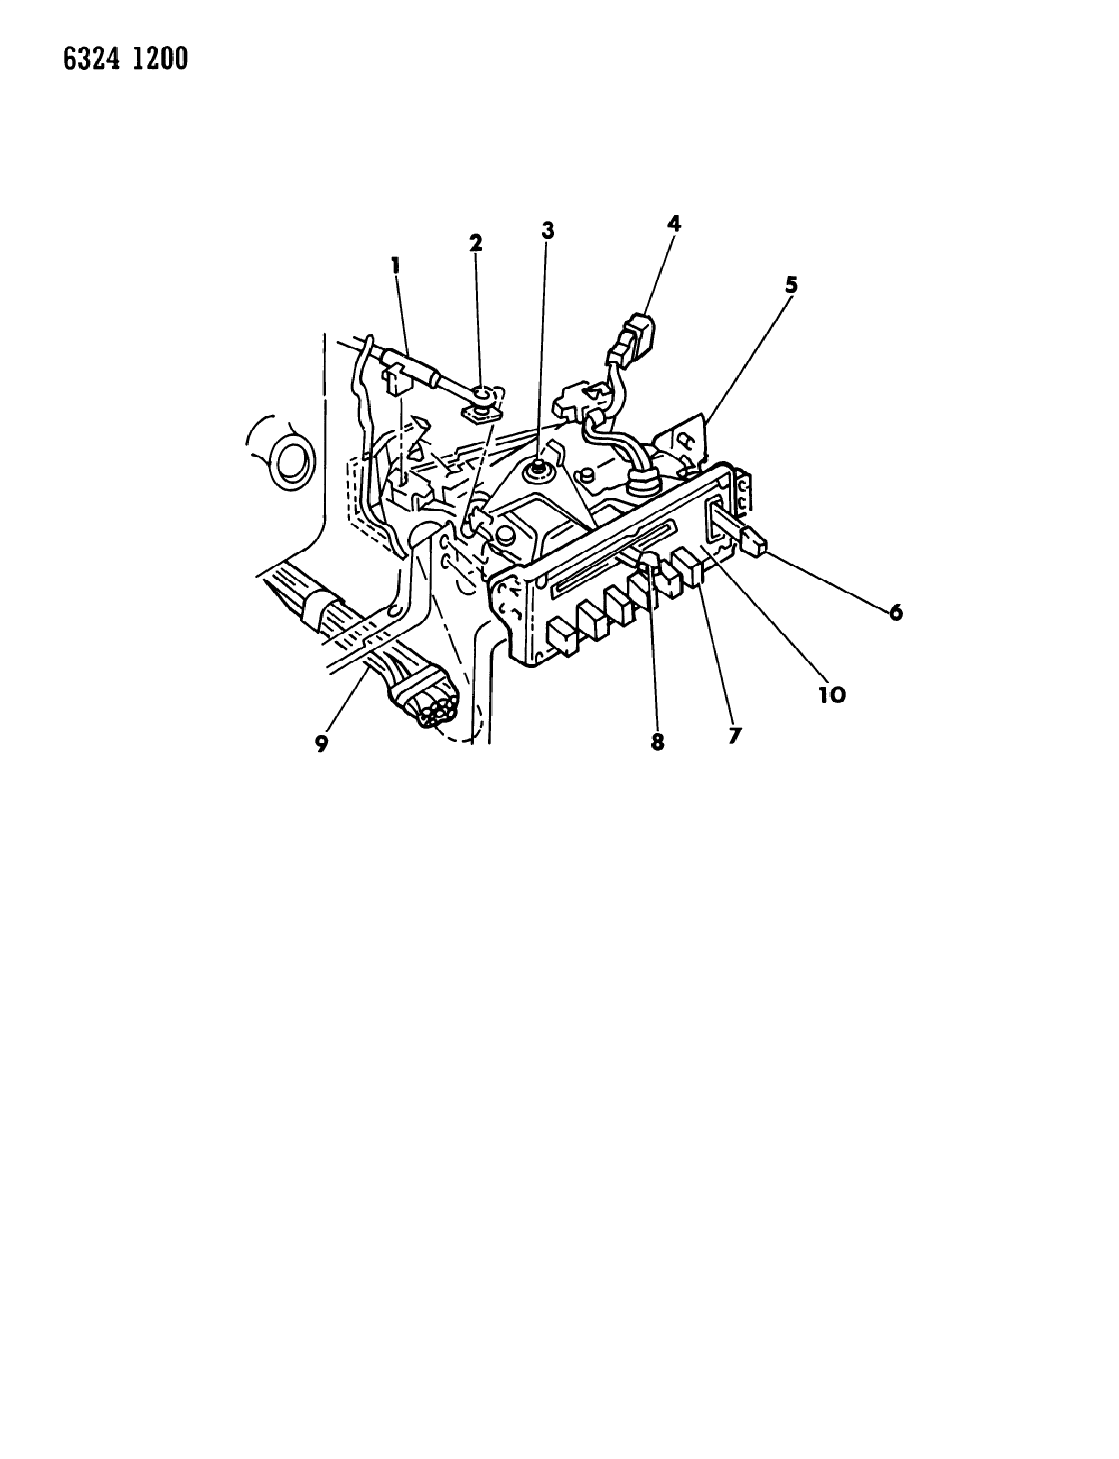 1987 Dodge Ramcharger Control, Air Conditioner